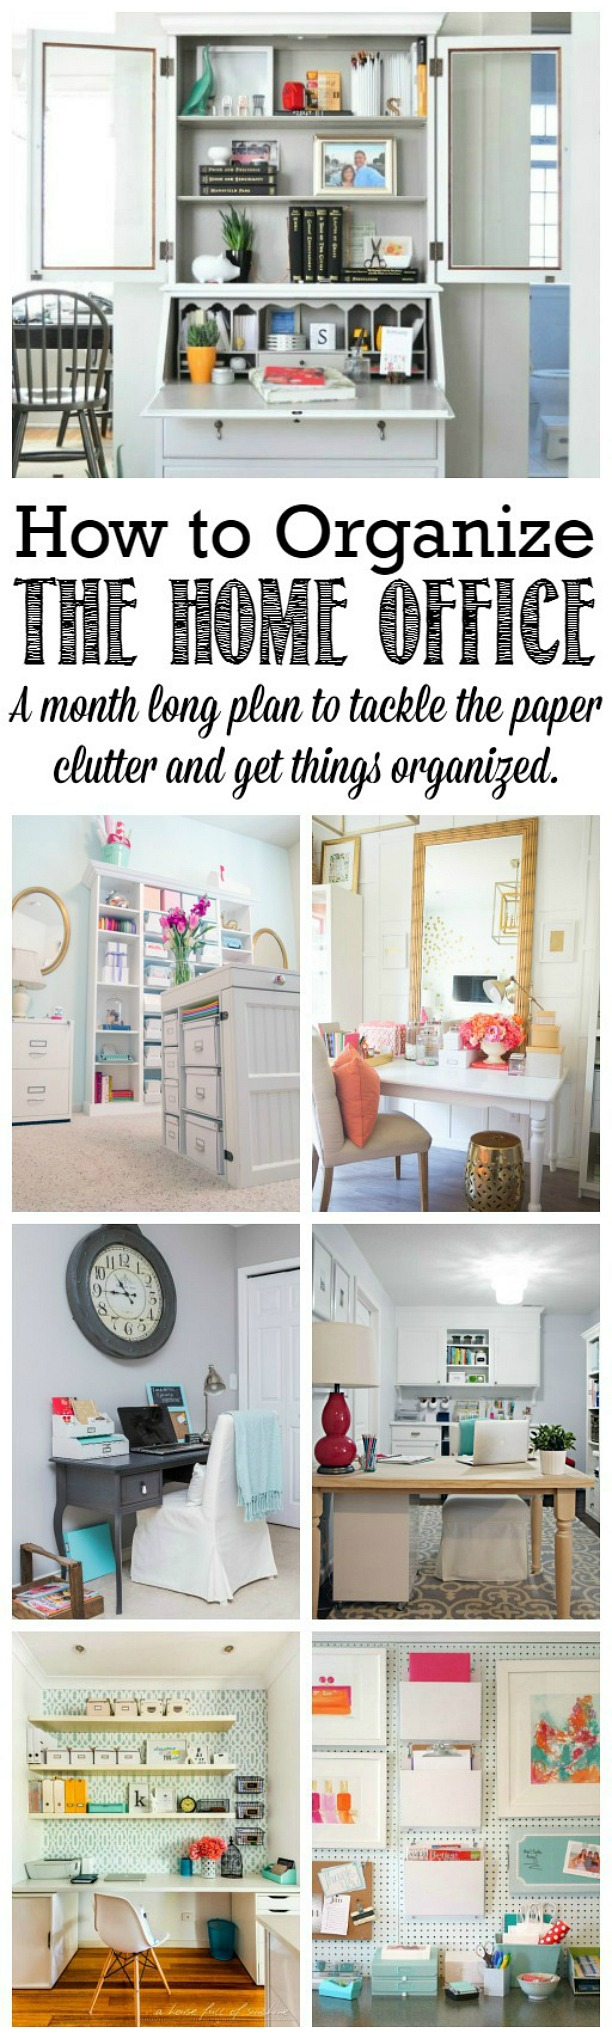 top 10 organization ideas of 2015 clean and scentsible. Black Bedroom Furniture Sets. Home Design Ideas